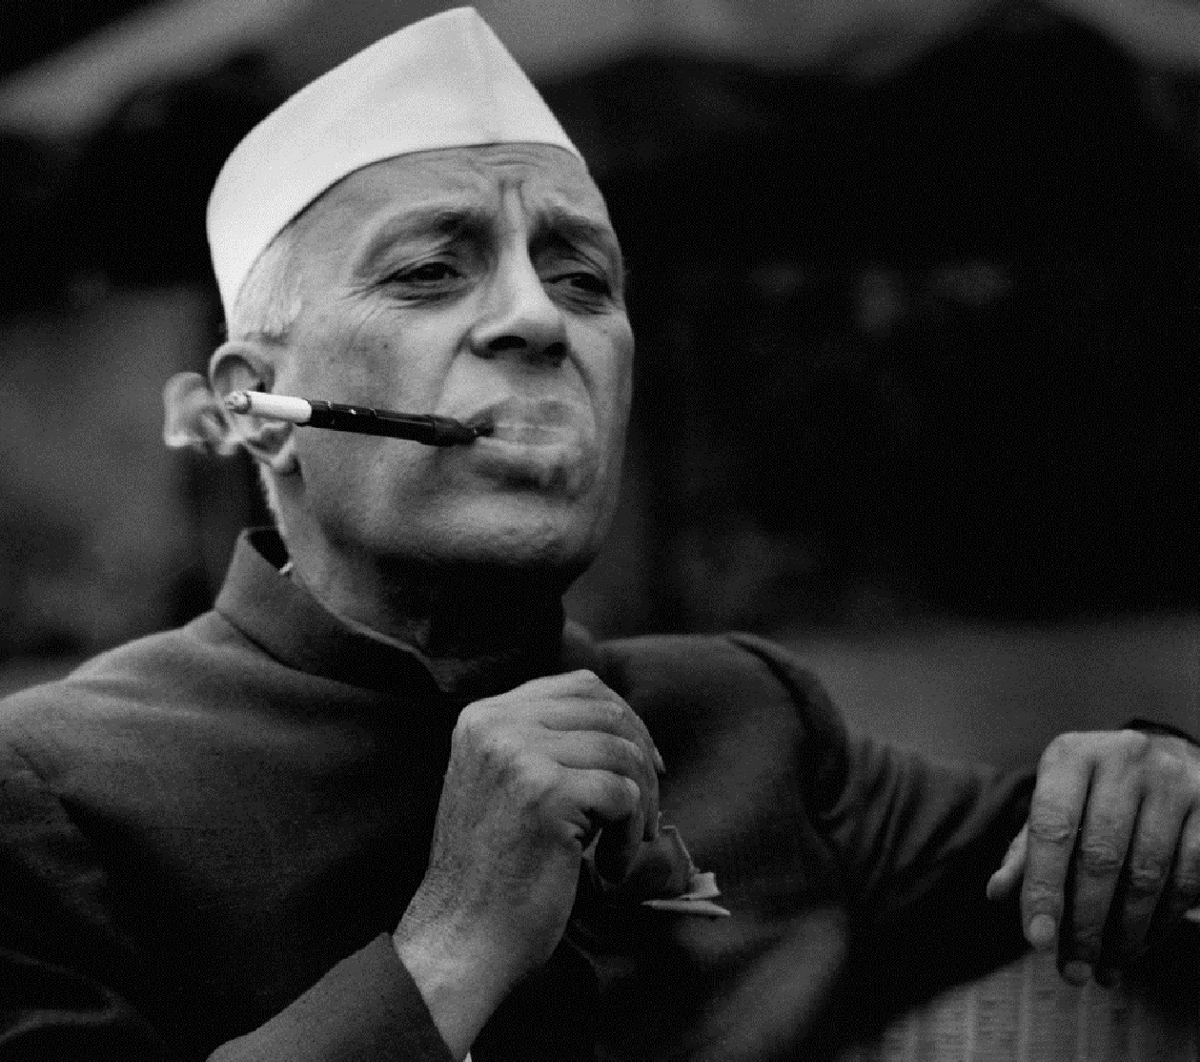 nehru the great leader of Jawaharlal nehru, the first prime minister of independent india (1947-64), who established parliamentary government, the initiator of non alignment policy in foreign affairs, often referred with the epithet of panditji, was born on nov 14, 1889, in allahabad his father, motilal nehru, was a barrister and a moderate nationalist leader.